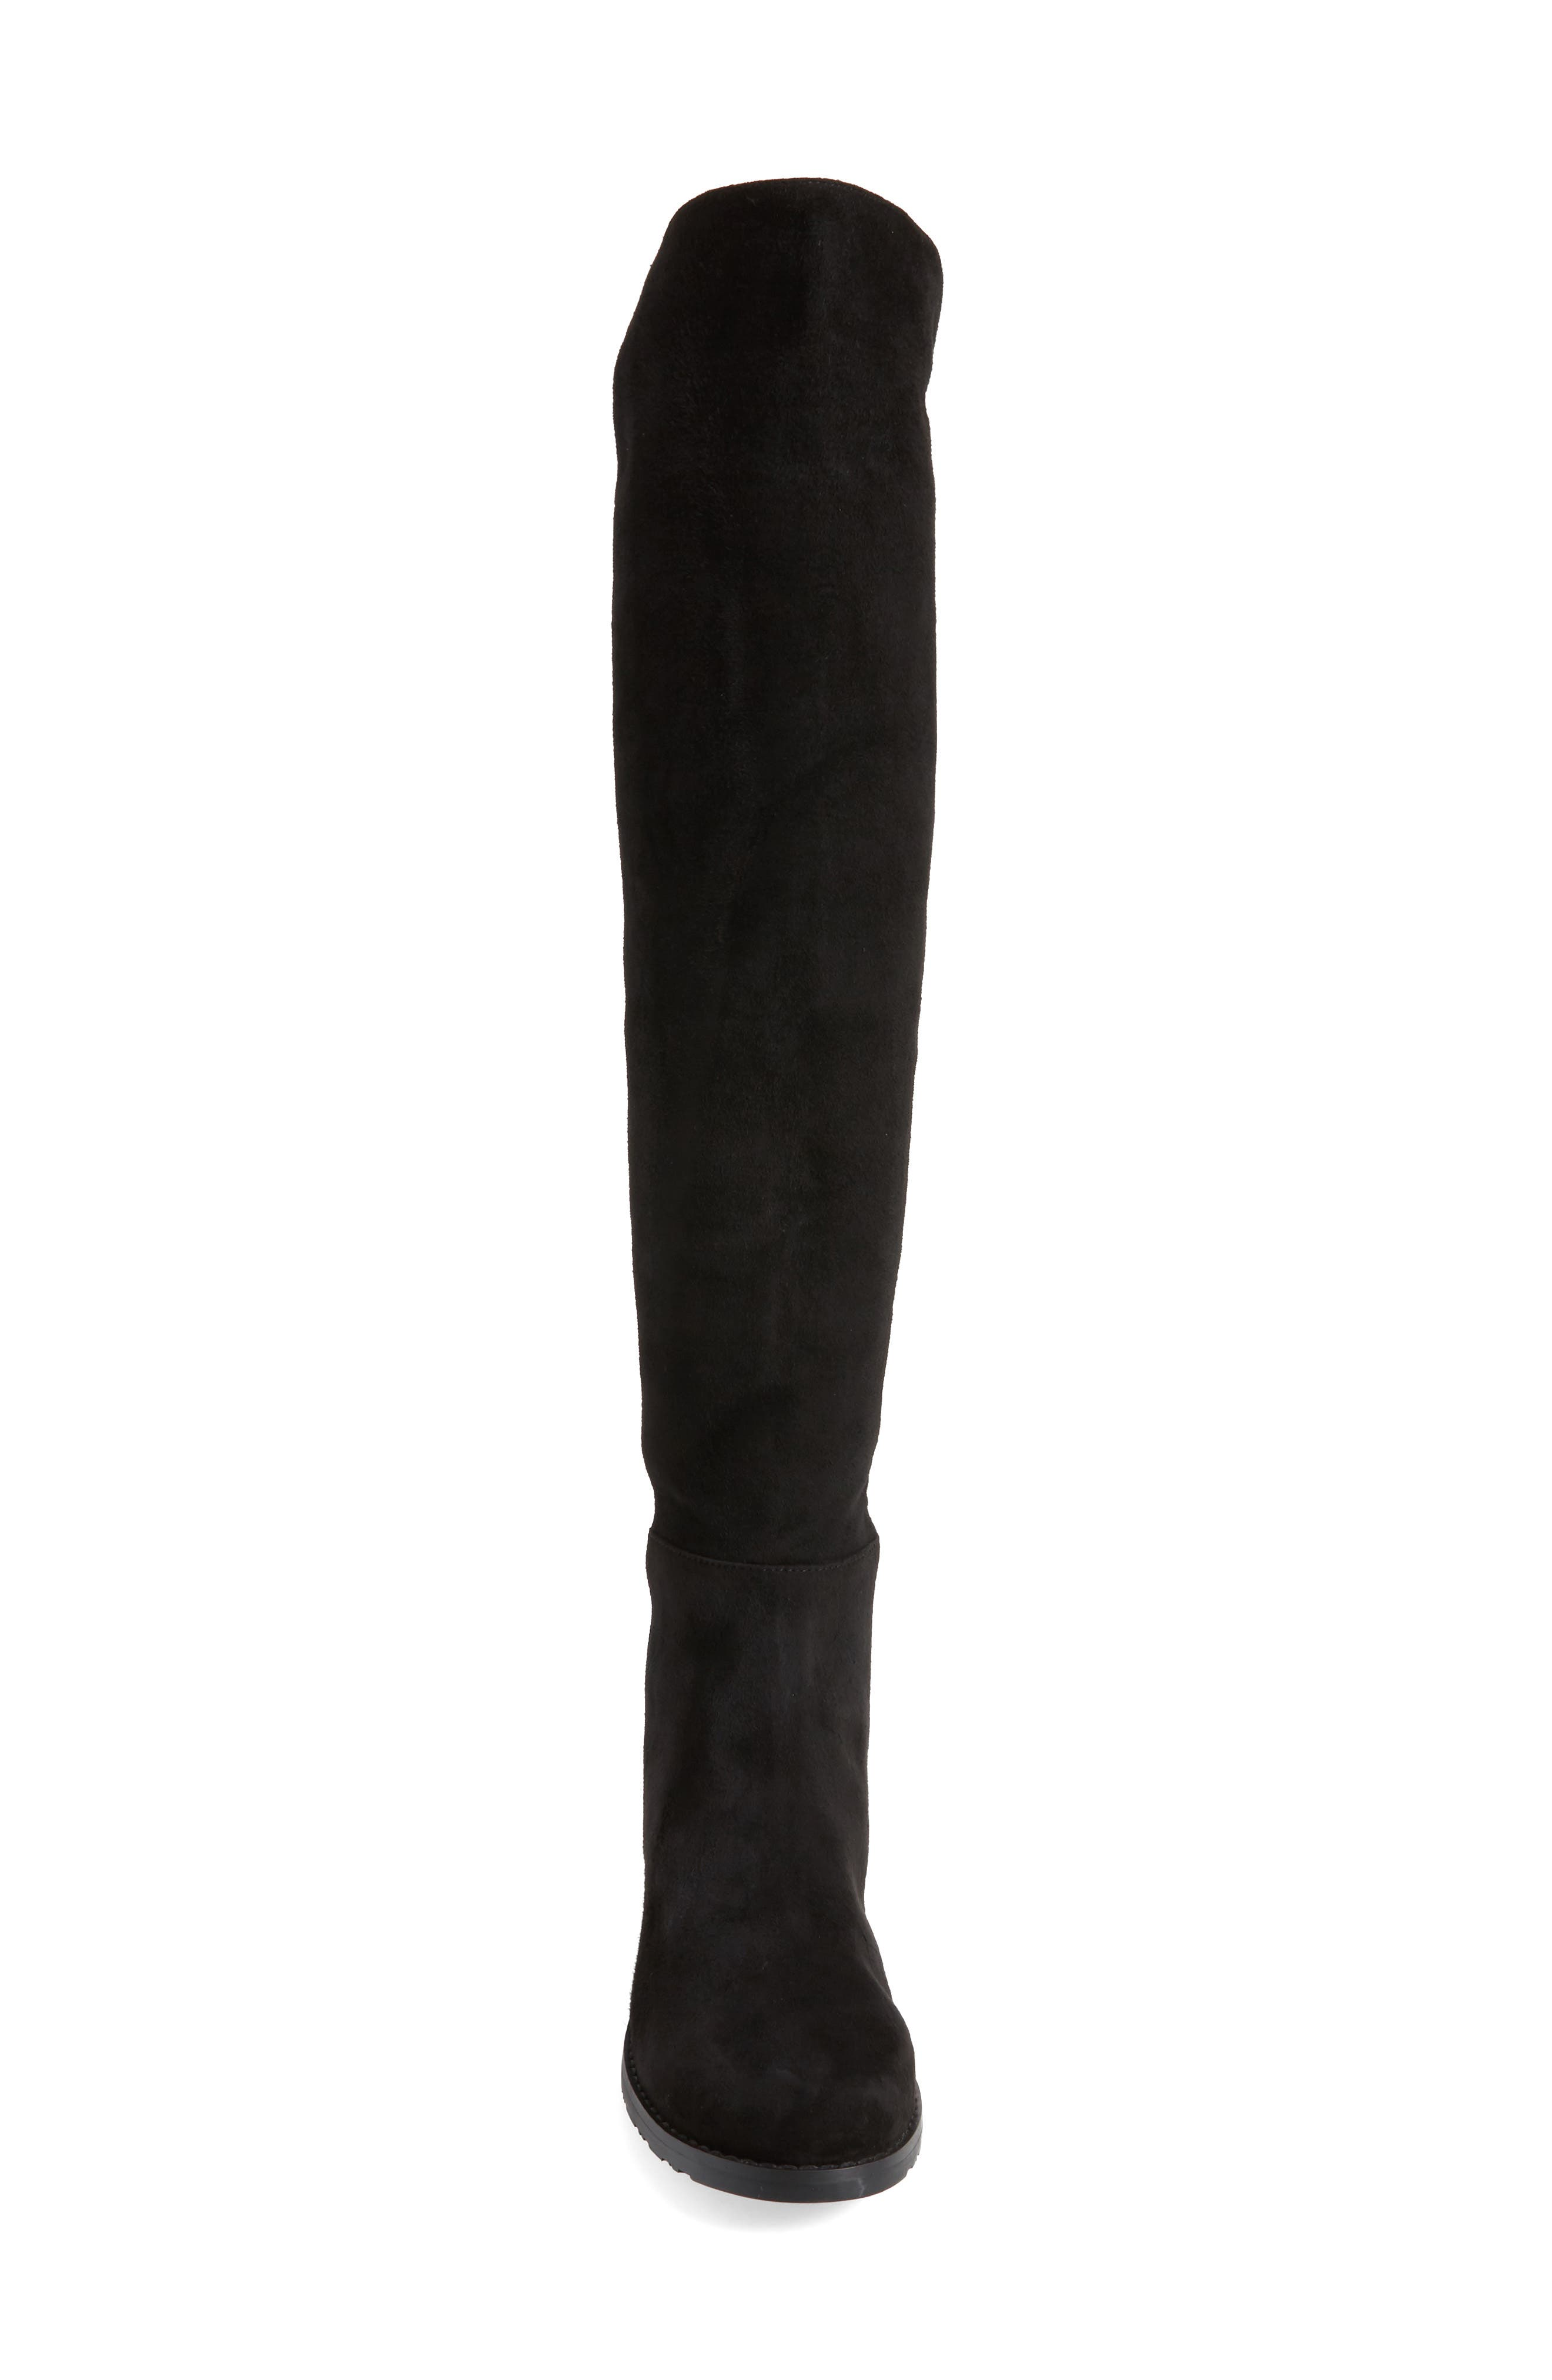 Panache Tall Boot,                             Alternate thumbnail 4, color,                             Black Suede